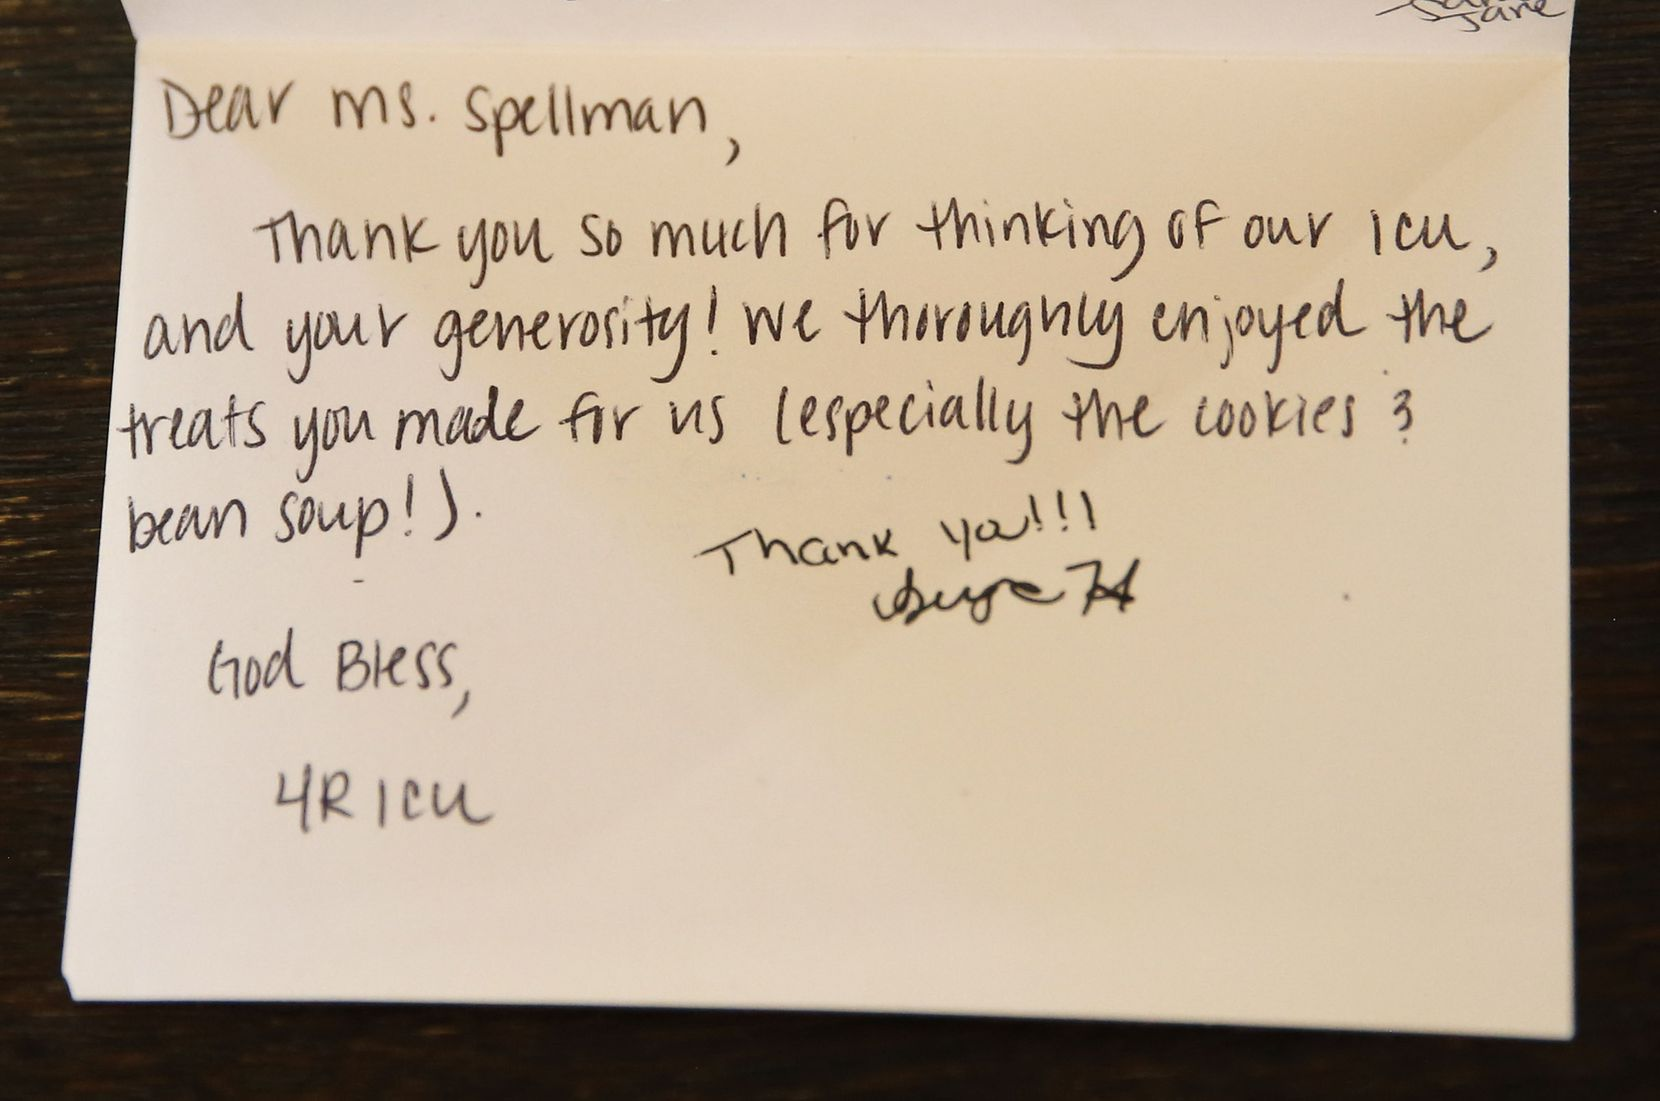 A thank-you note sent to St. Mary's Guild, photographed at St. Michael and All Angels Episcopal Church on Monday.